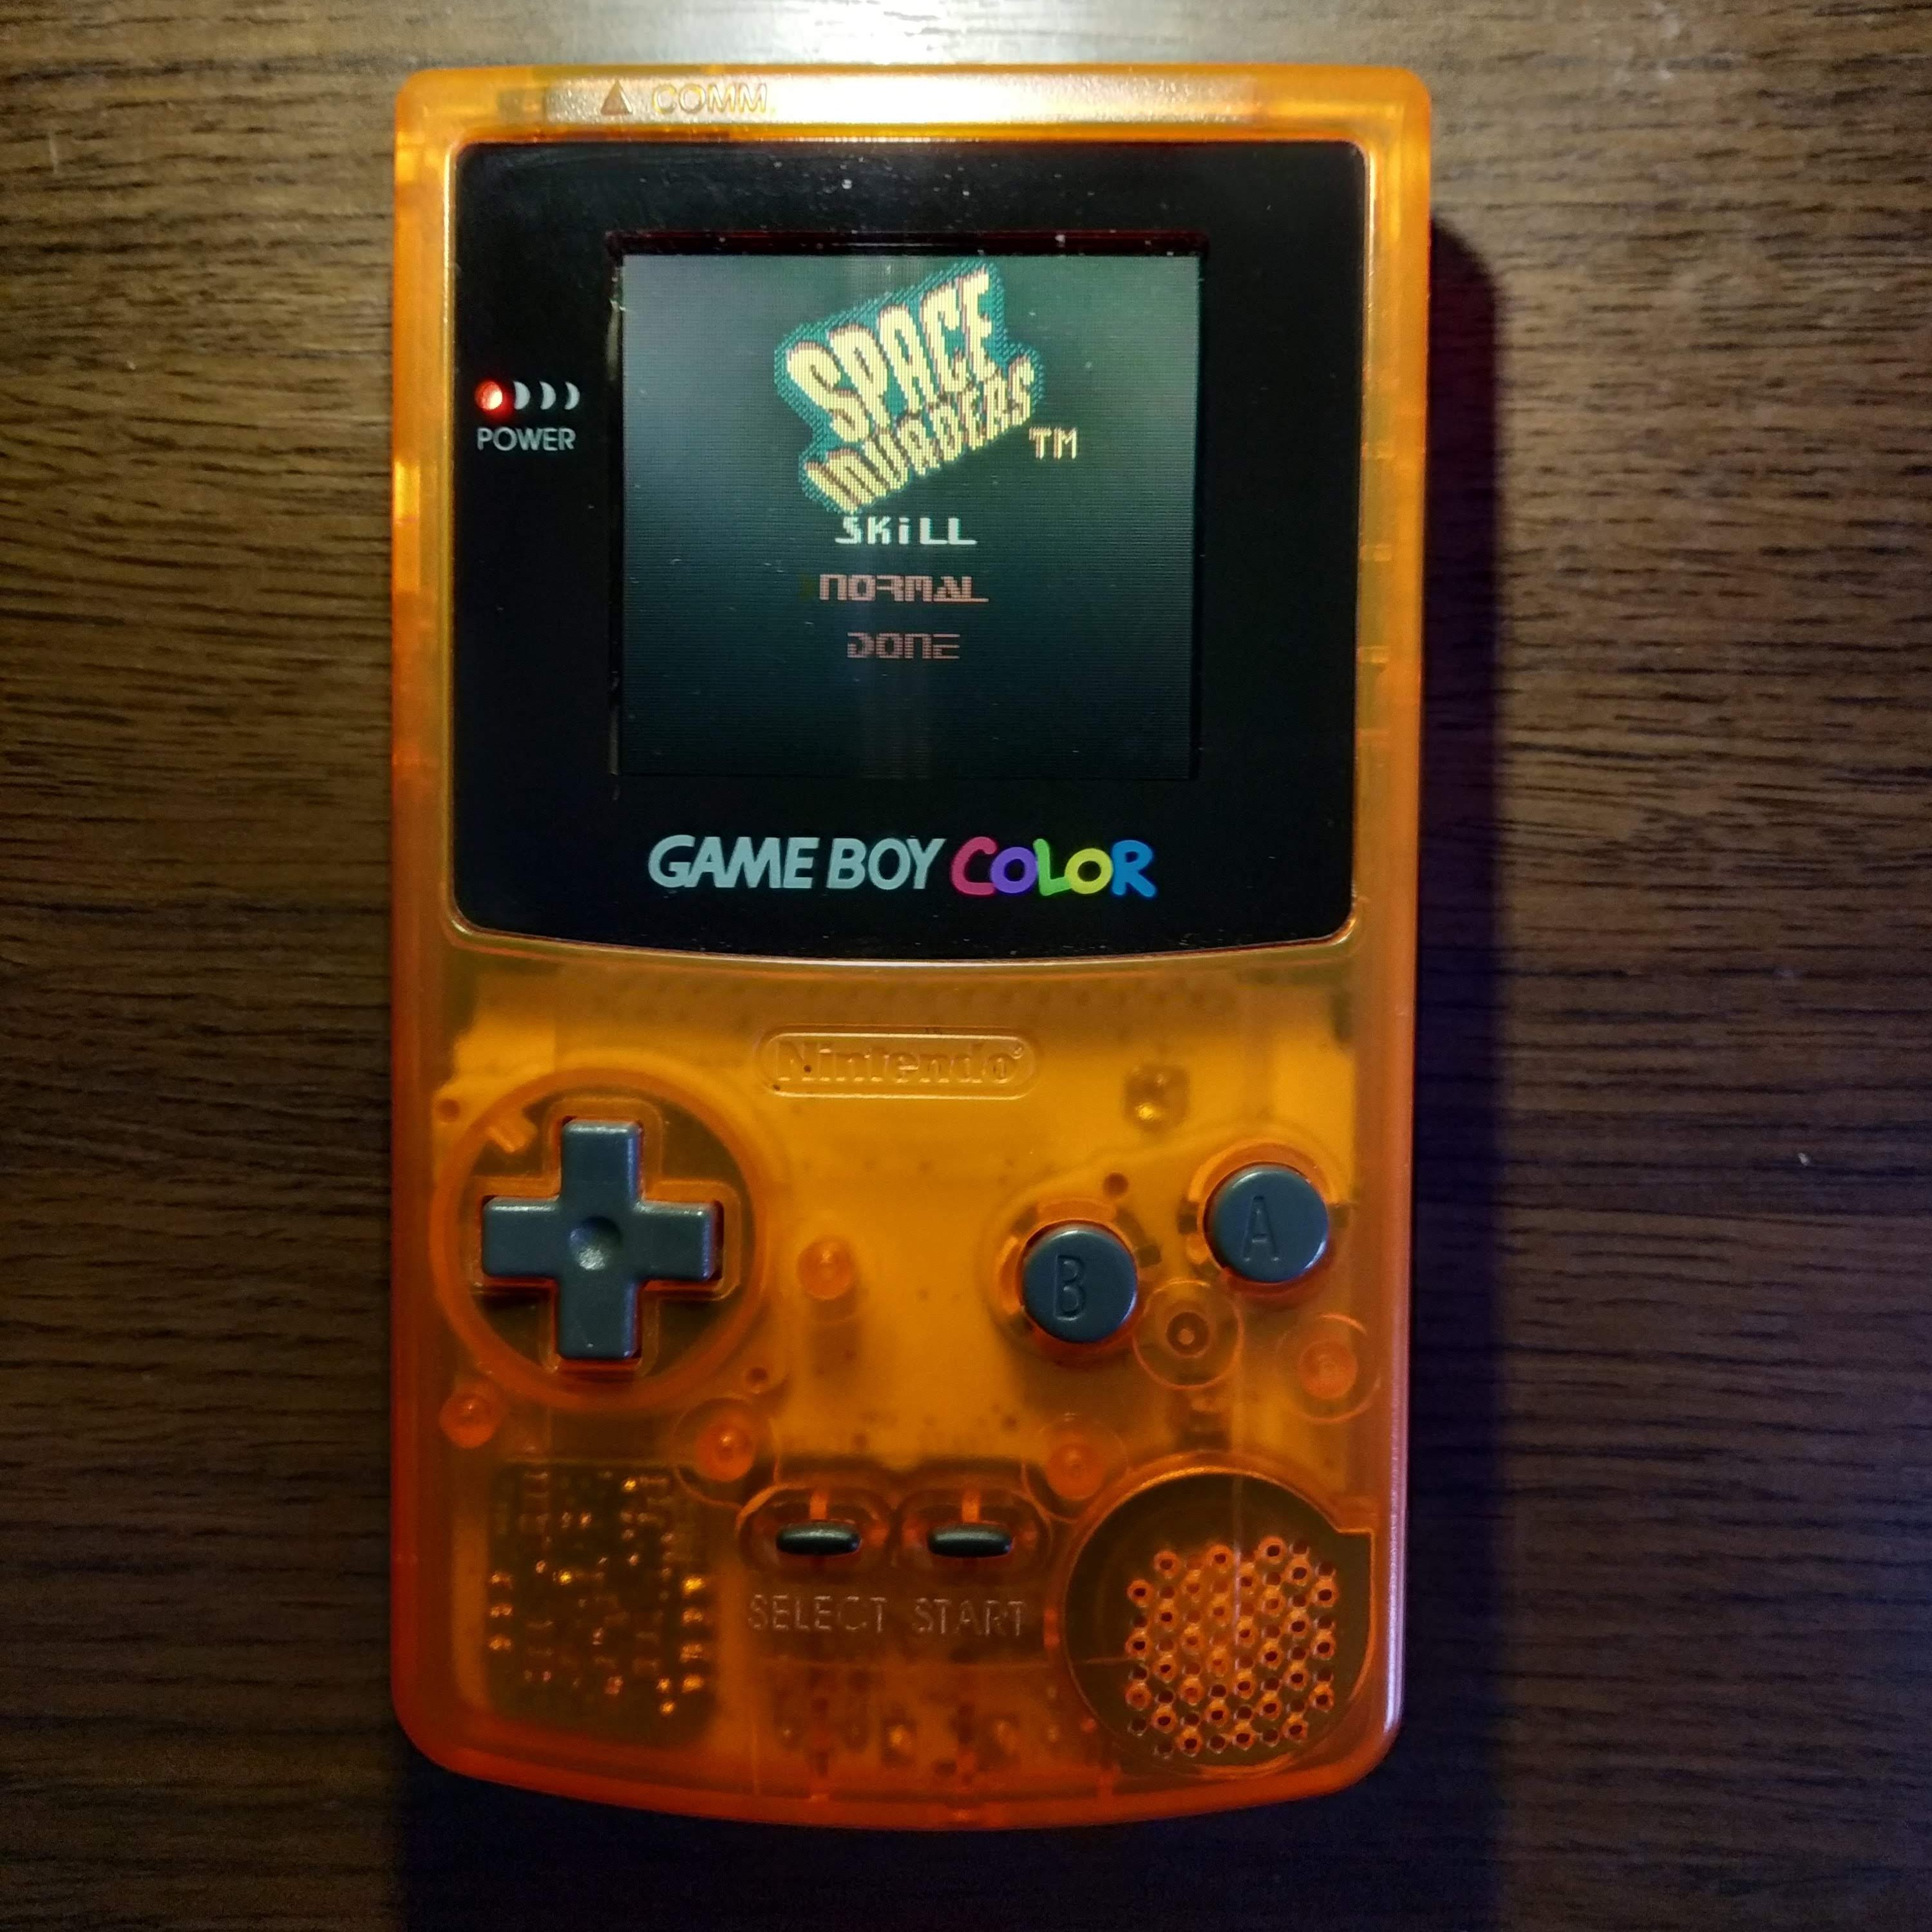 Larquey: Space Invaders [Normal] (Game Boy Color) 6,111 points on 2020-07-15 11:03:37